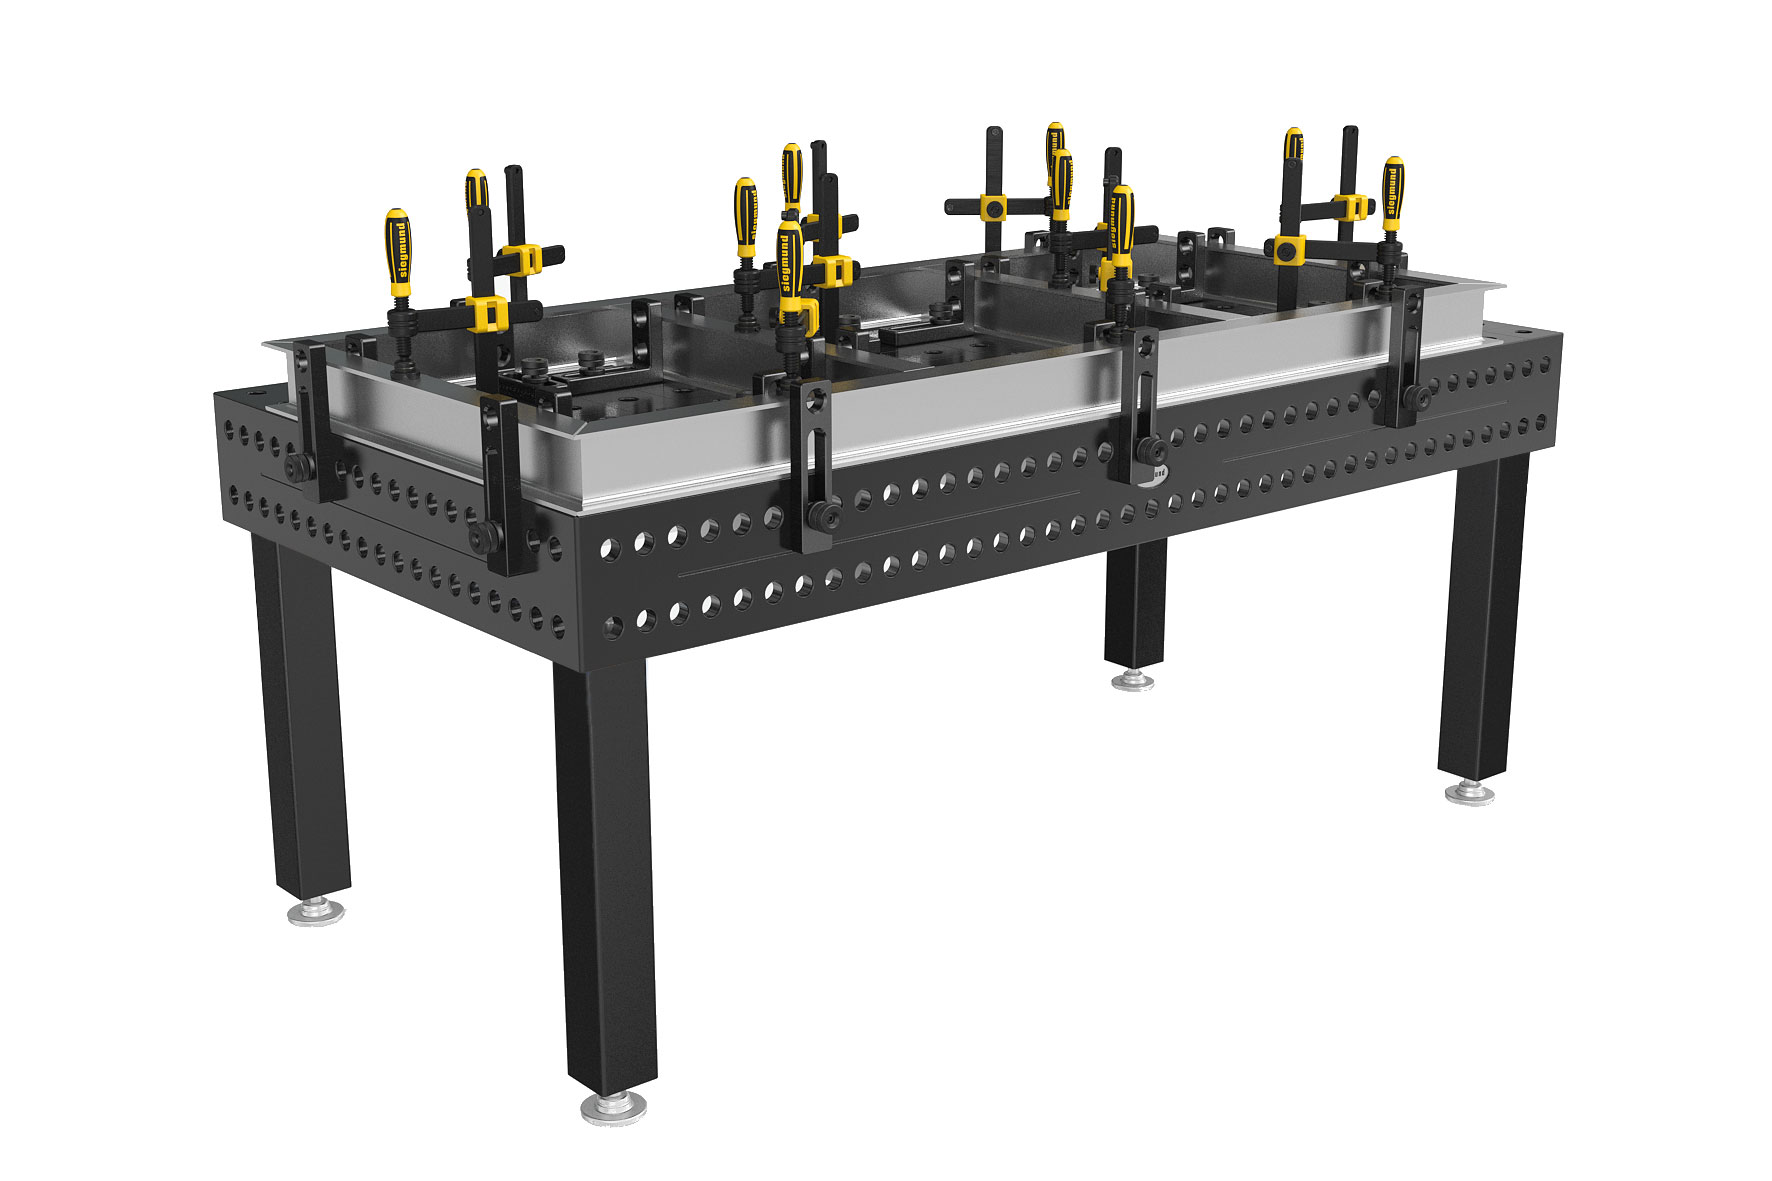 Professional Extreme 750 Siegmund Welding Tables From Strong Hand Tools Are Finished With A Plasma Nitride Treatment That Prolongs The Life Of Table